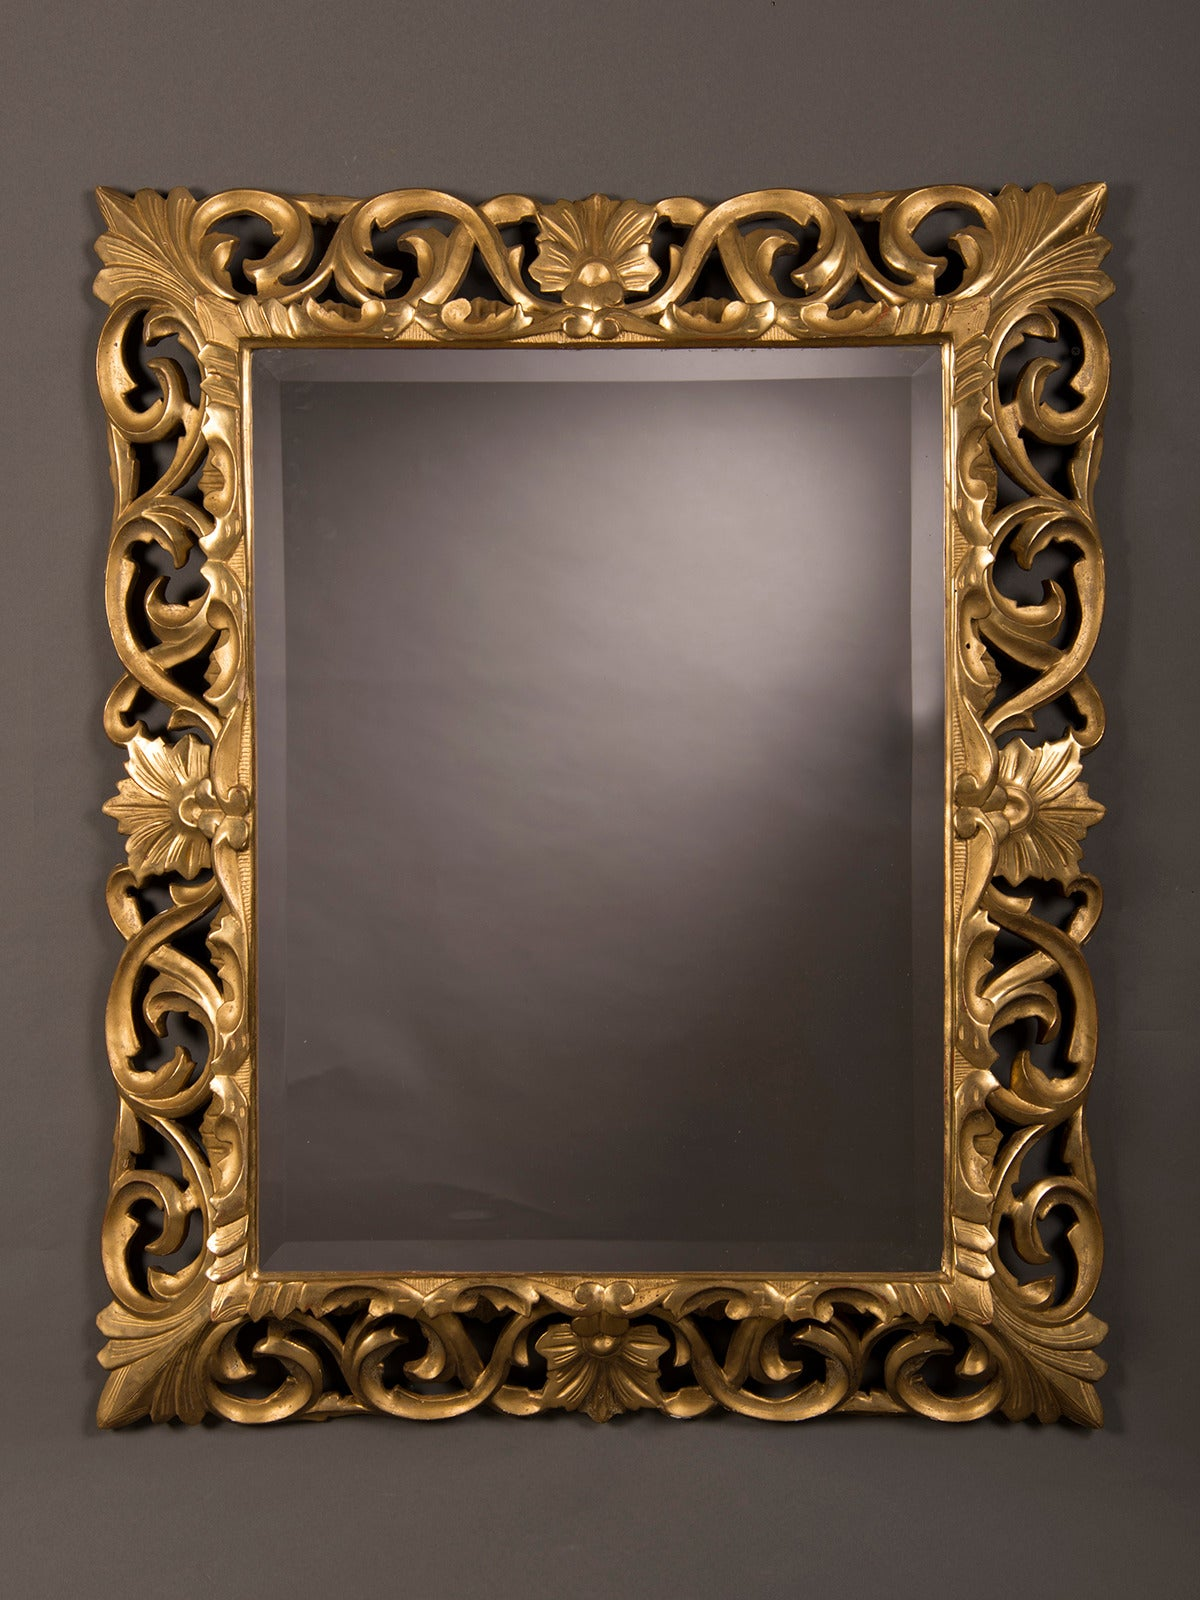 Antique french baroque style gold beveled mirror 1875 35 for Antique french mirror